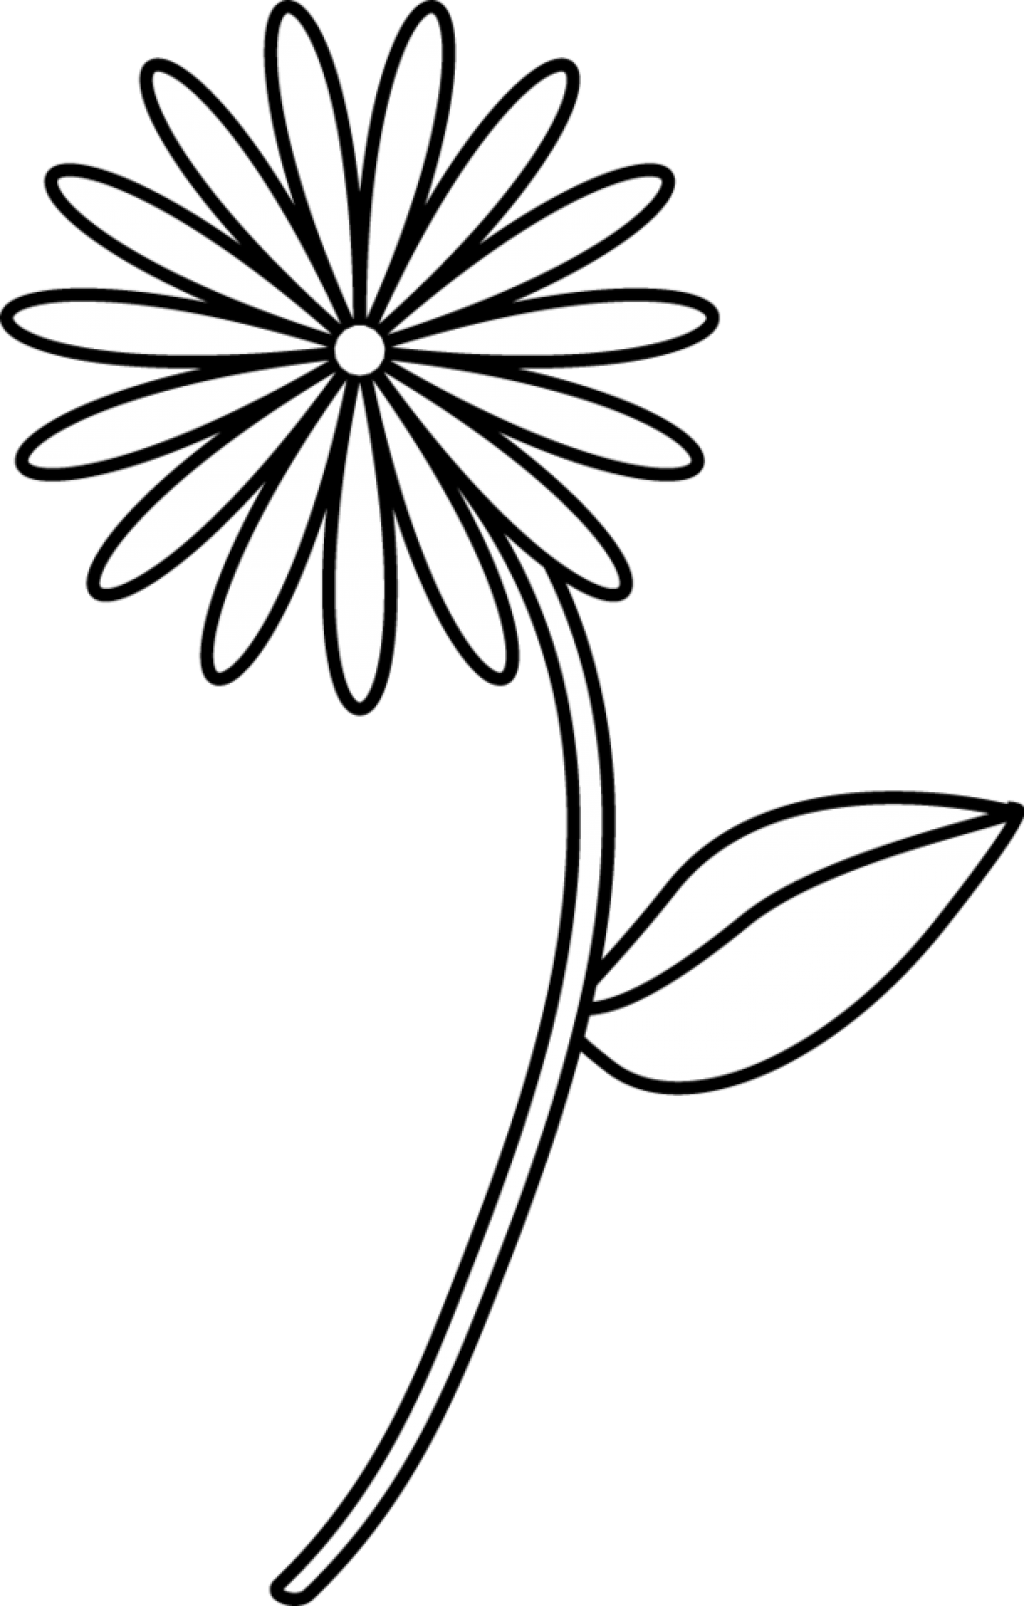 Simple Line Drawing Clip Art : Simple flower drawings for kids clipart ee to use clip art